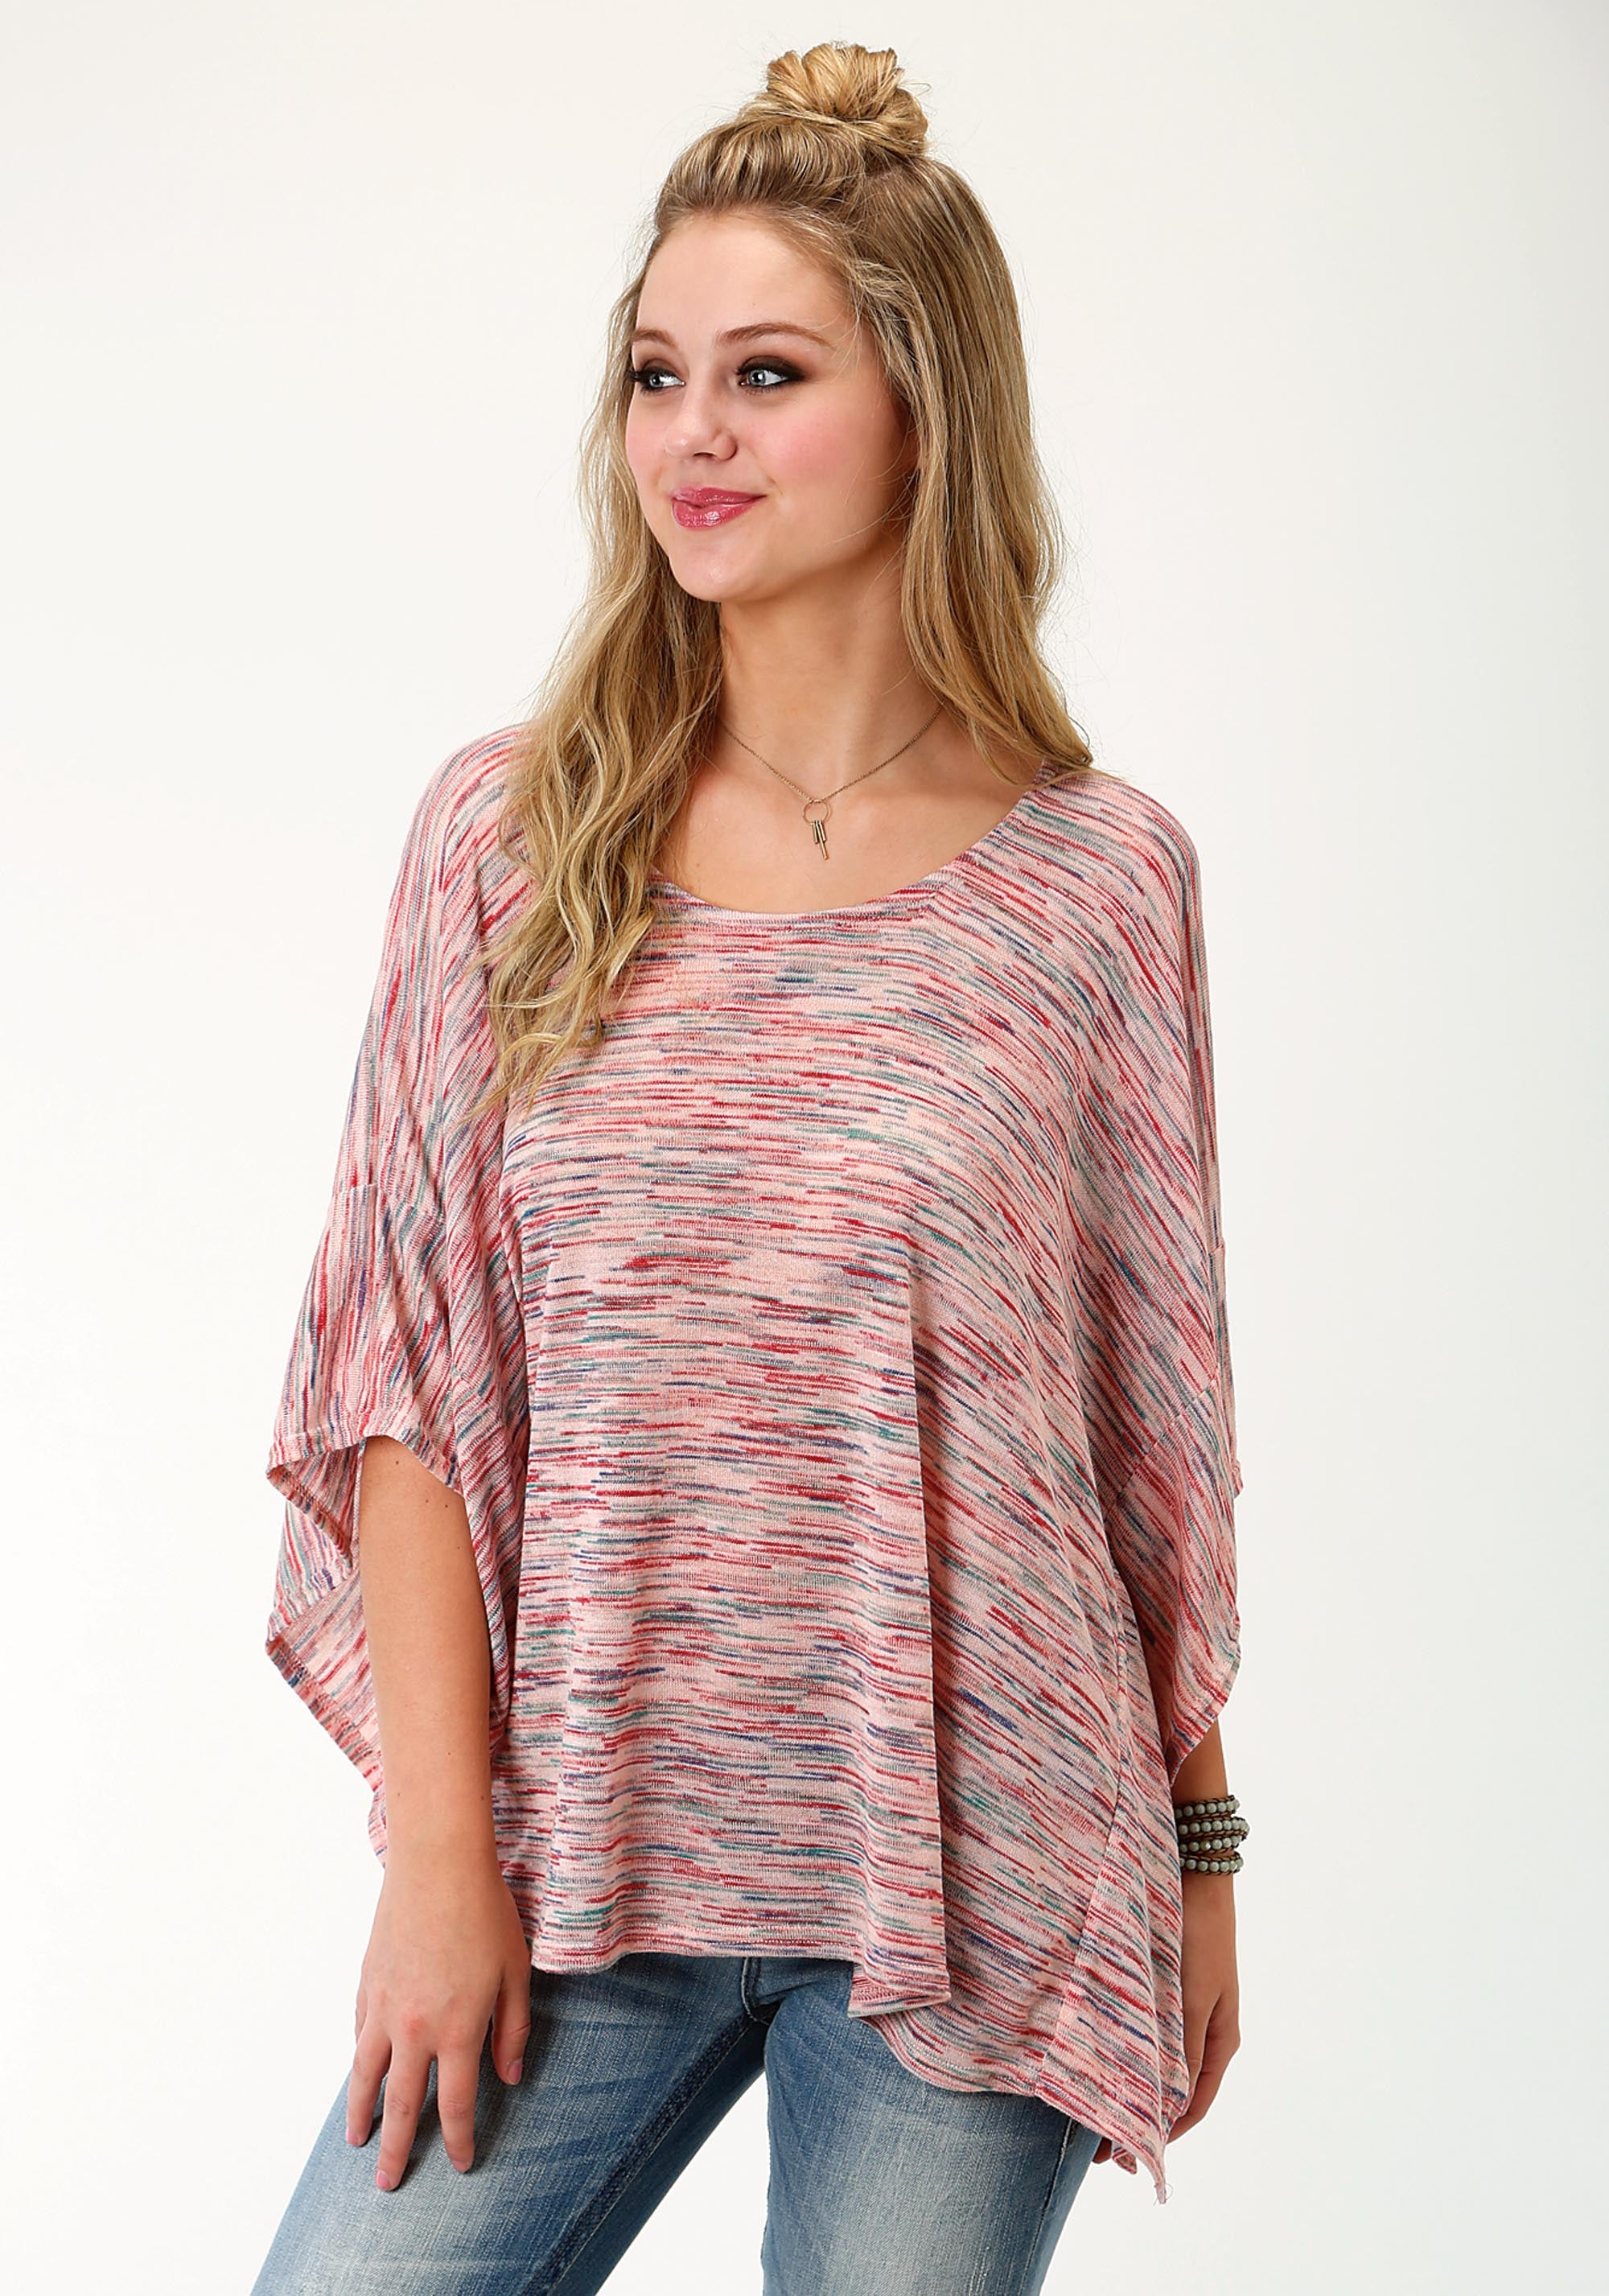 ROPER WOMENS PINK 1778 SPACE DYE SWEATER KNIT PONCHO FIVE STAR- SUMMER III SLEEVELESS SHIRT